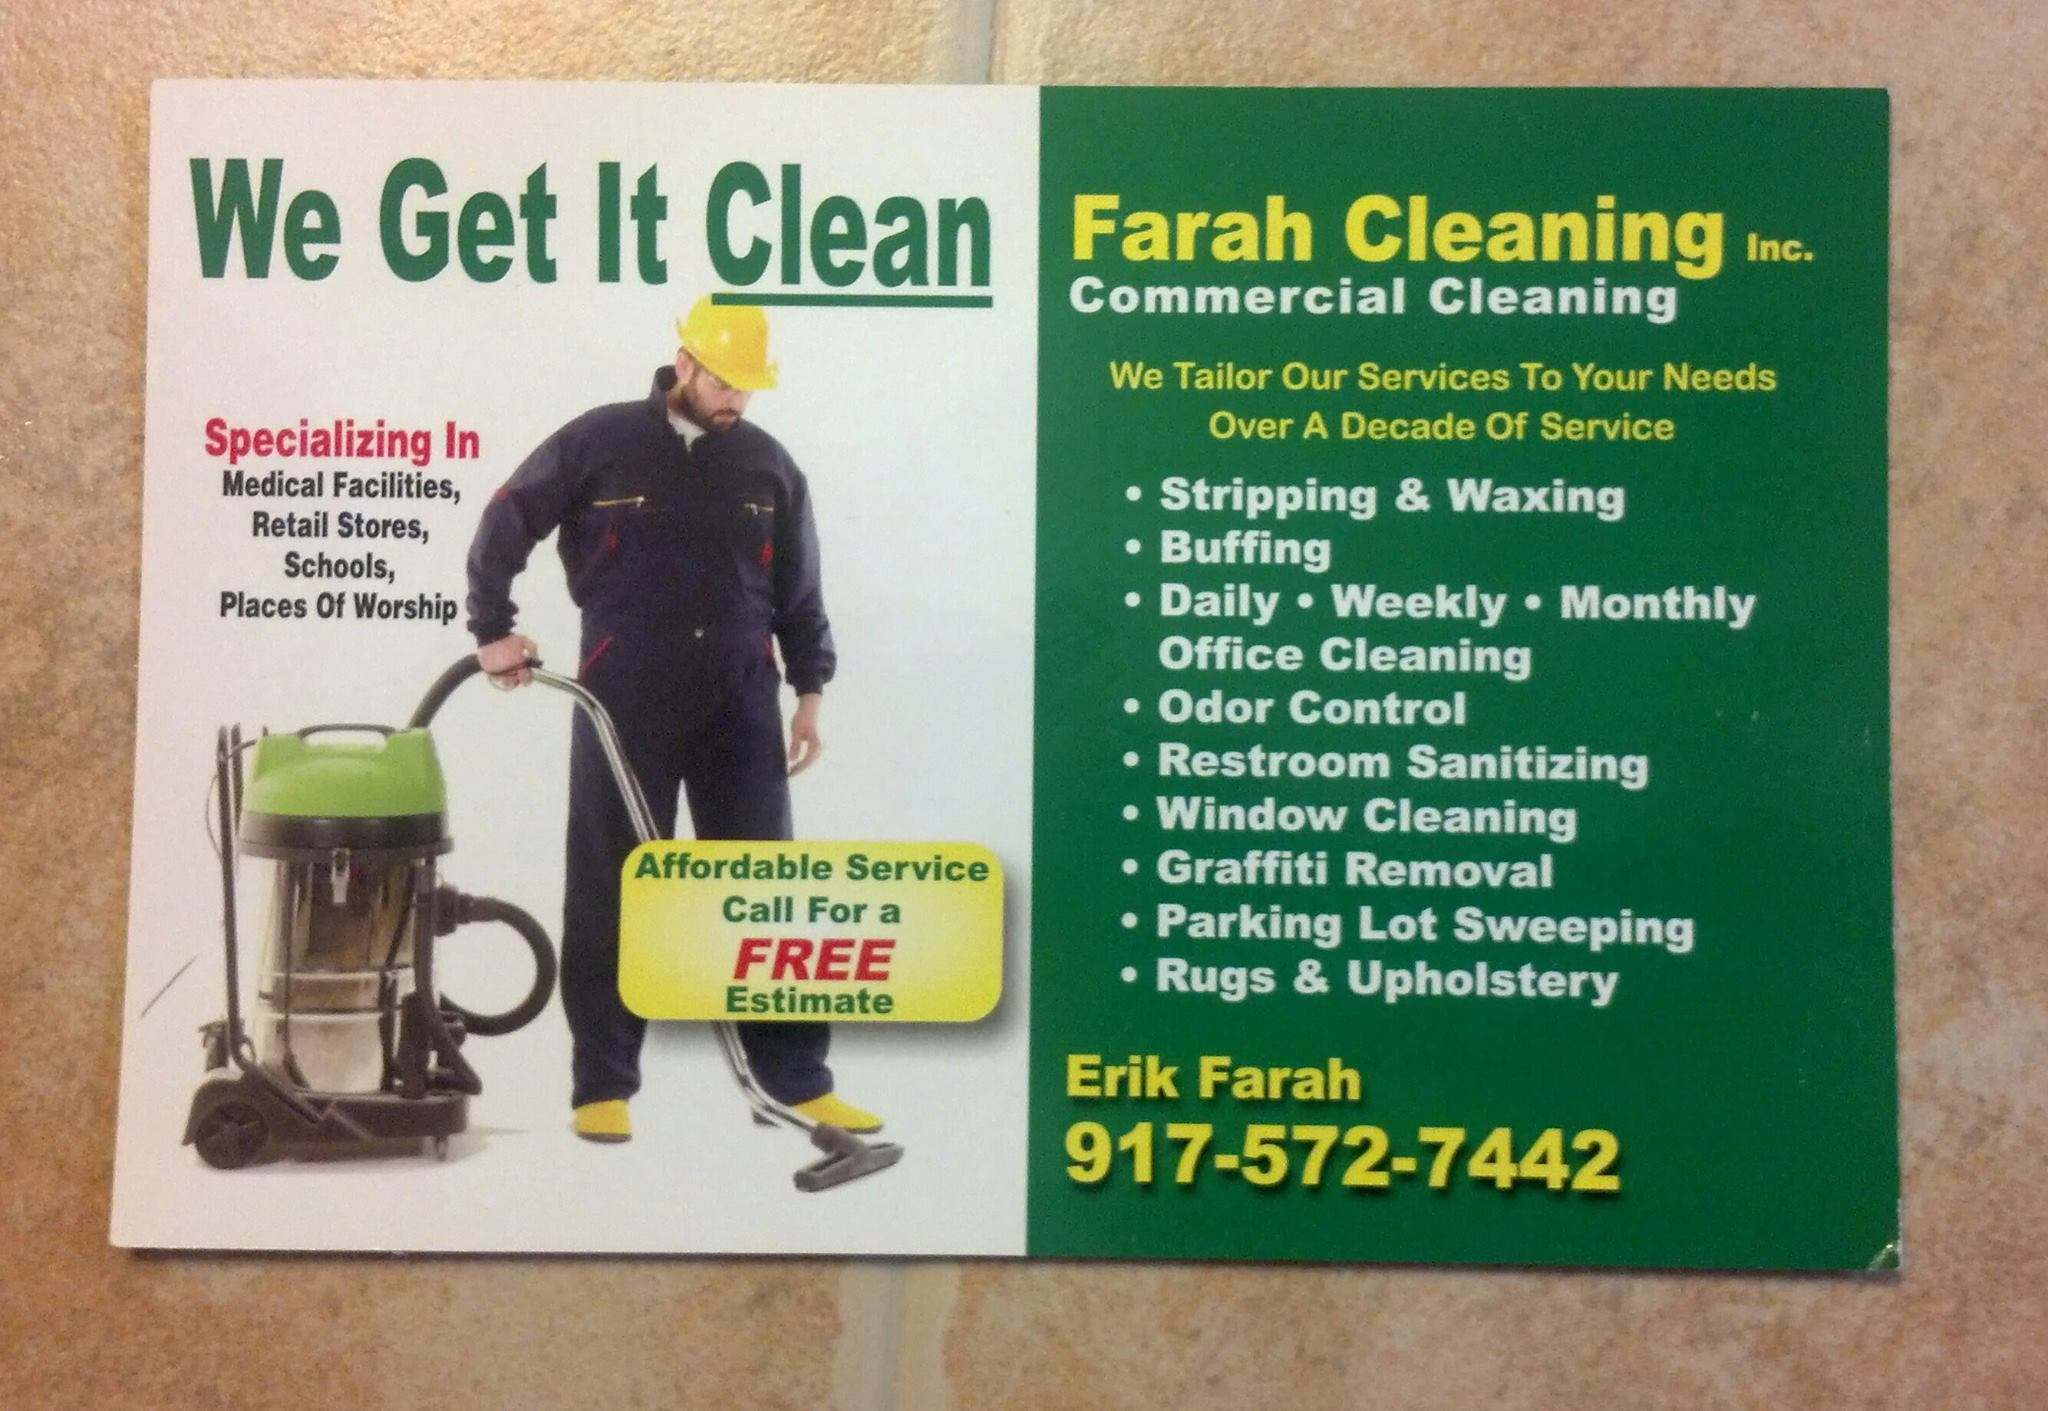 Farah Cleaning